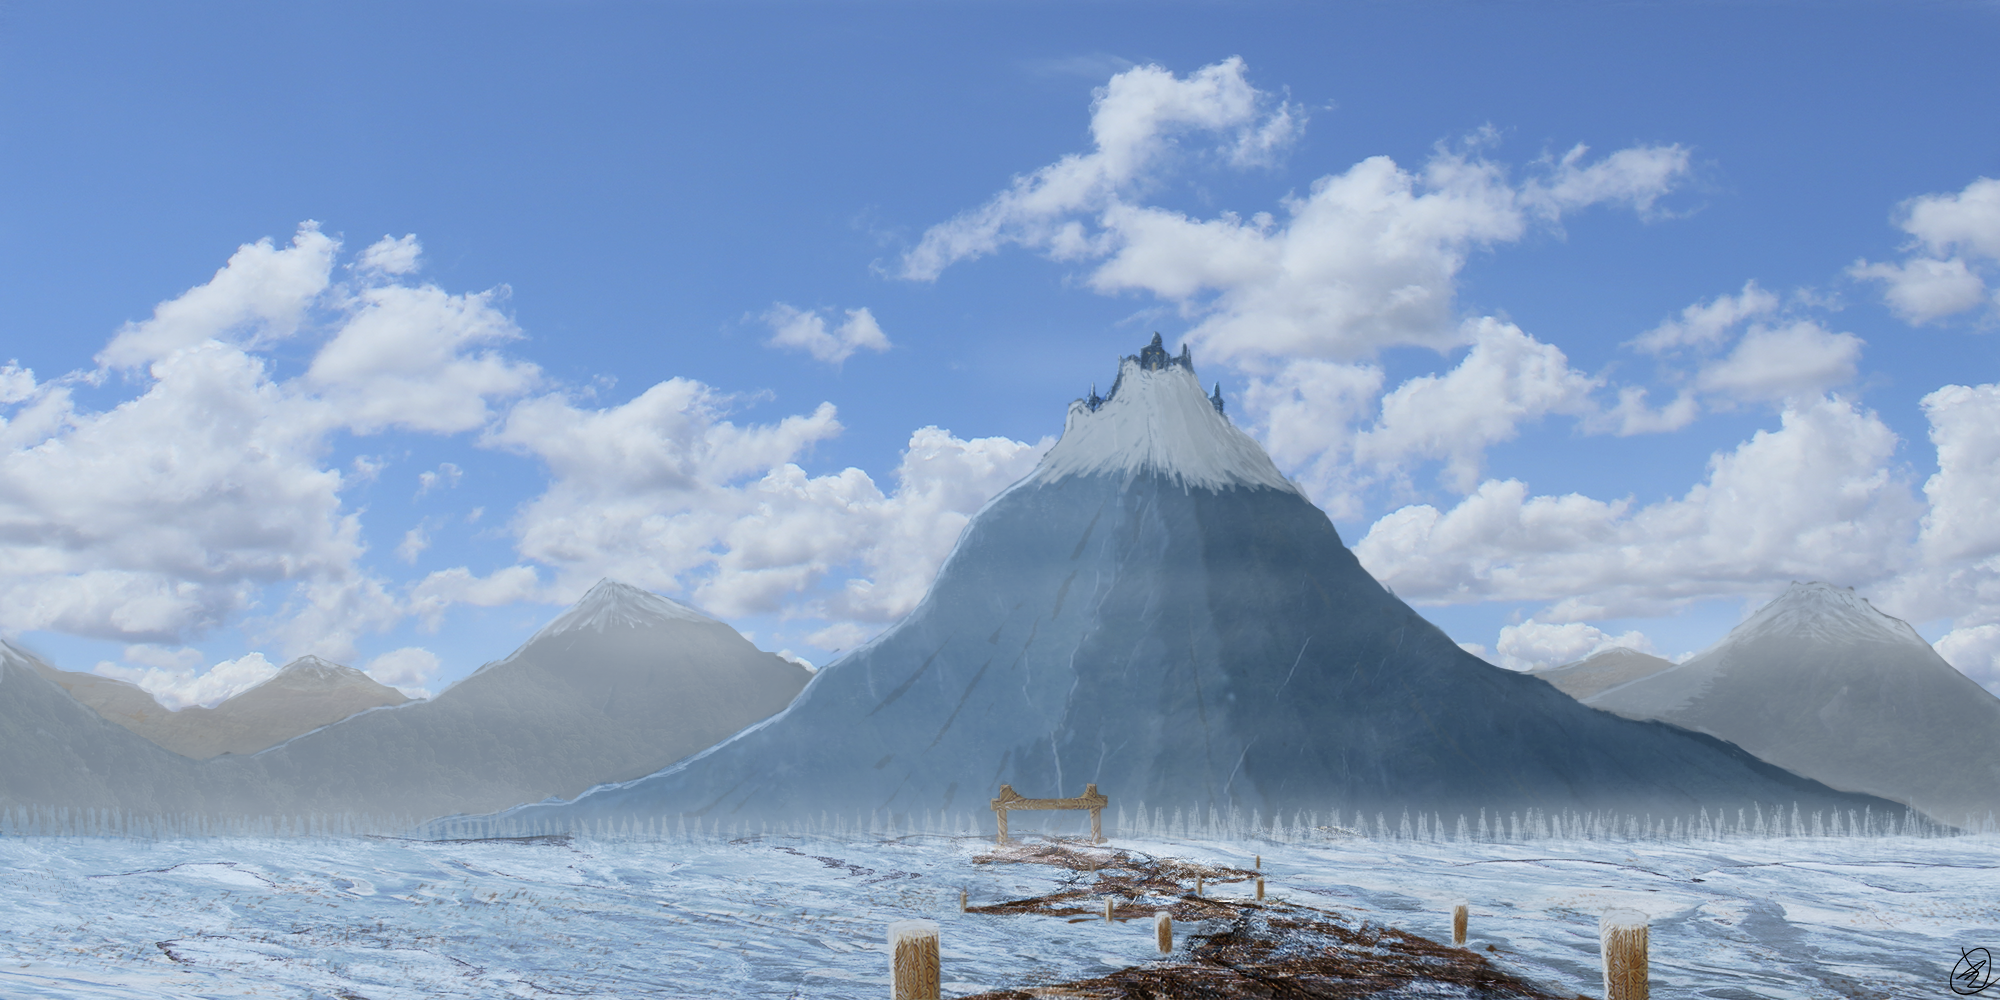 Gateway to the Ice Citadel